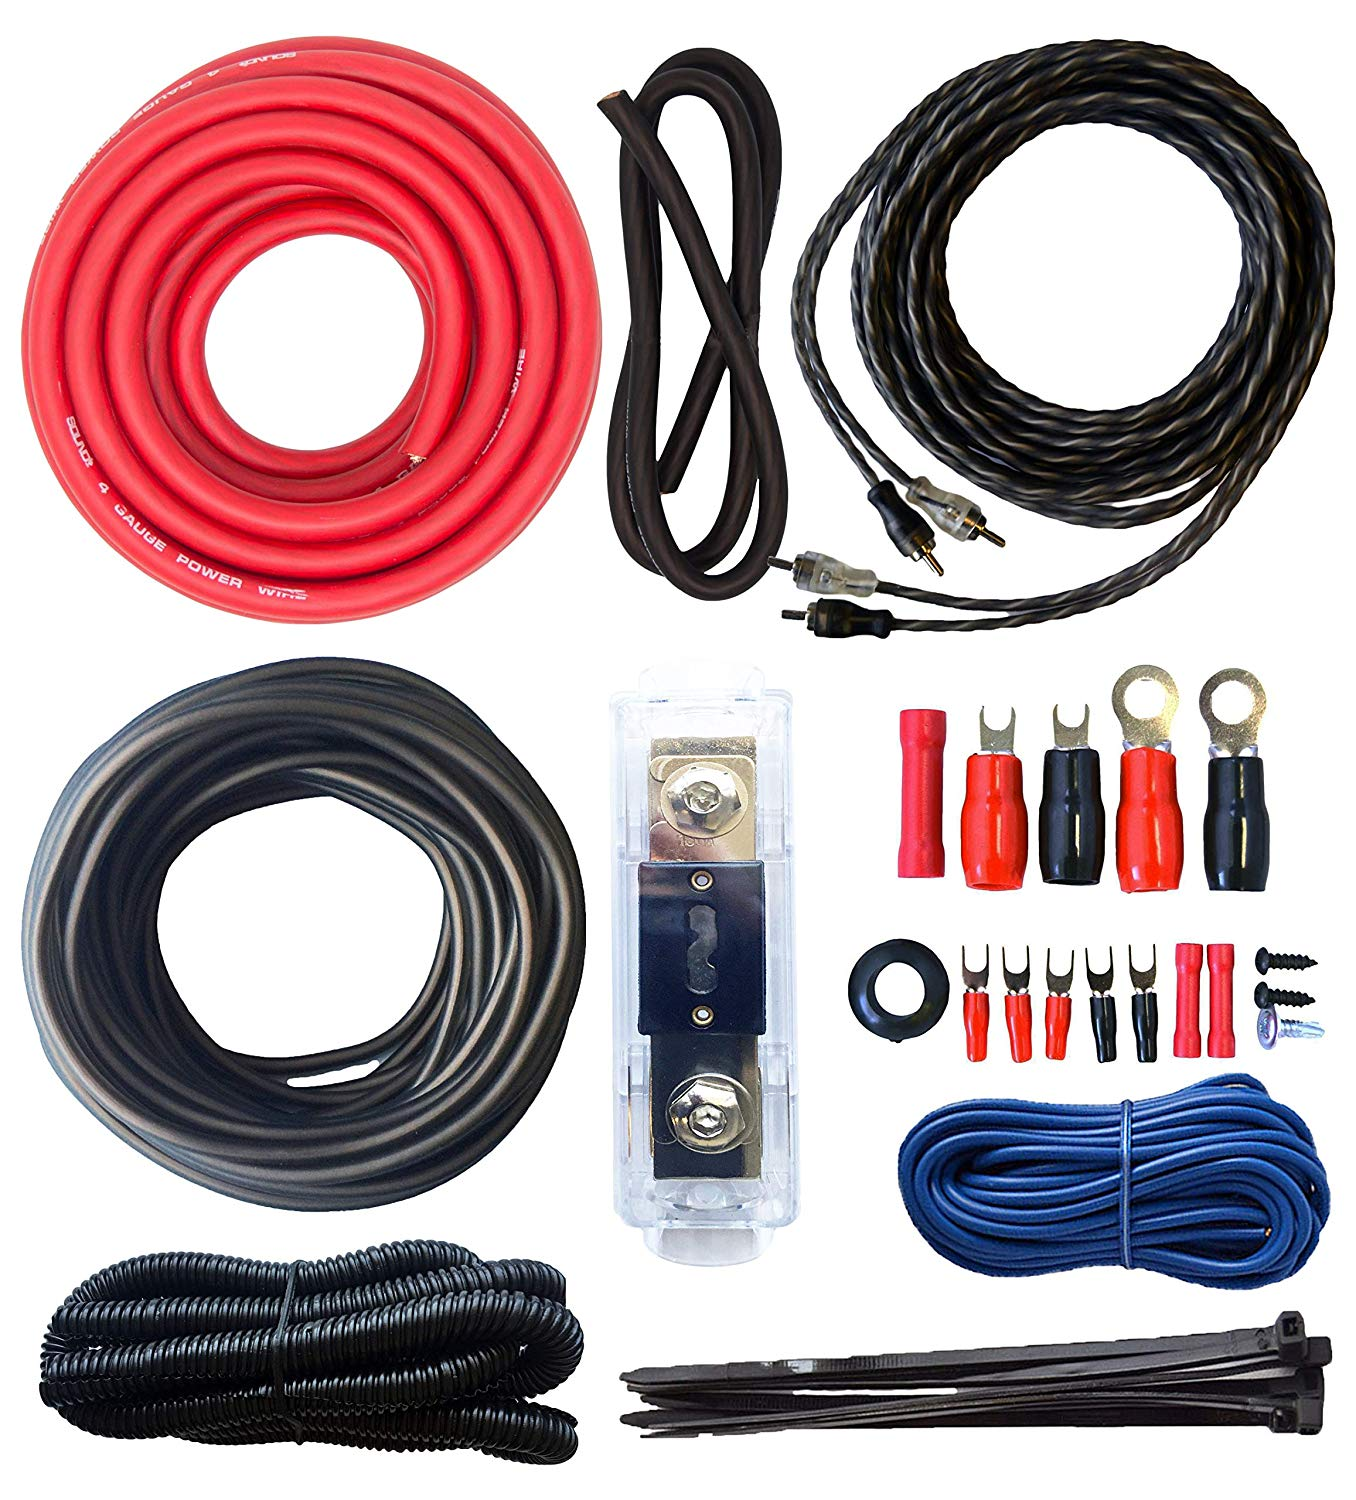 Remarkable Cheap 0 Gauge Amp Wire Kit Find 0 Gauge Amp Wire Kit Deals On Line Wiring Cloud Staixuggs Outletorg